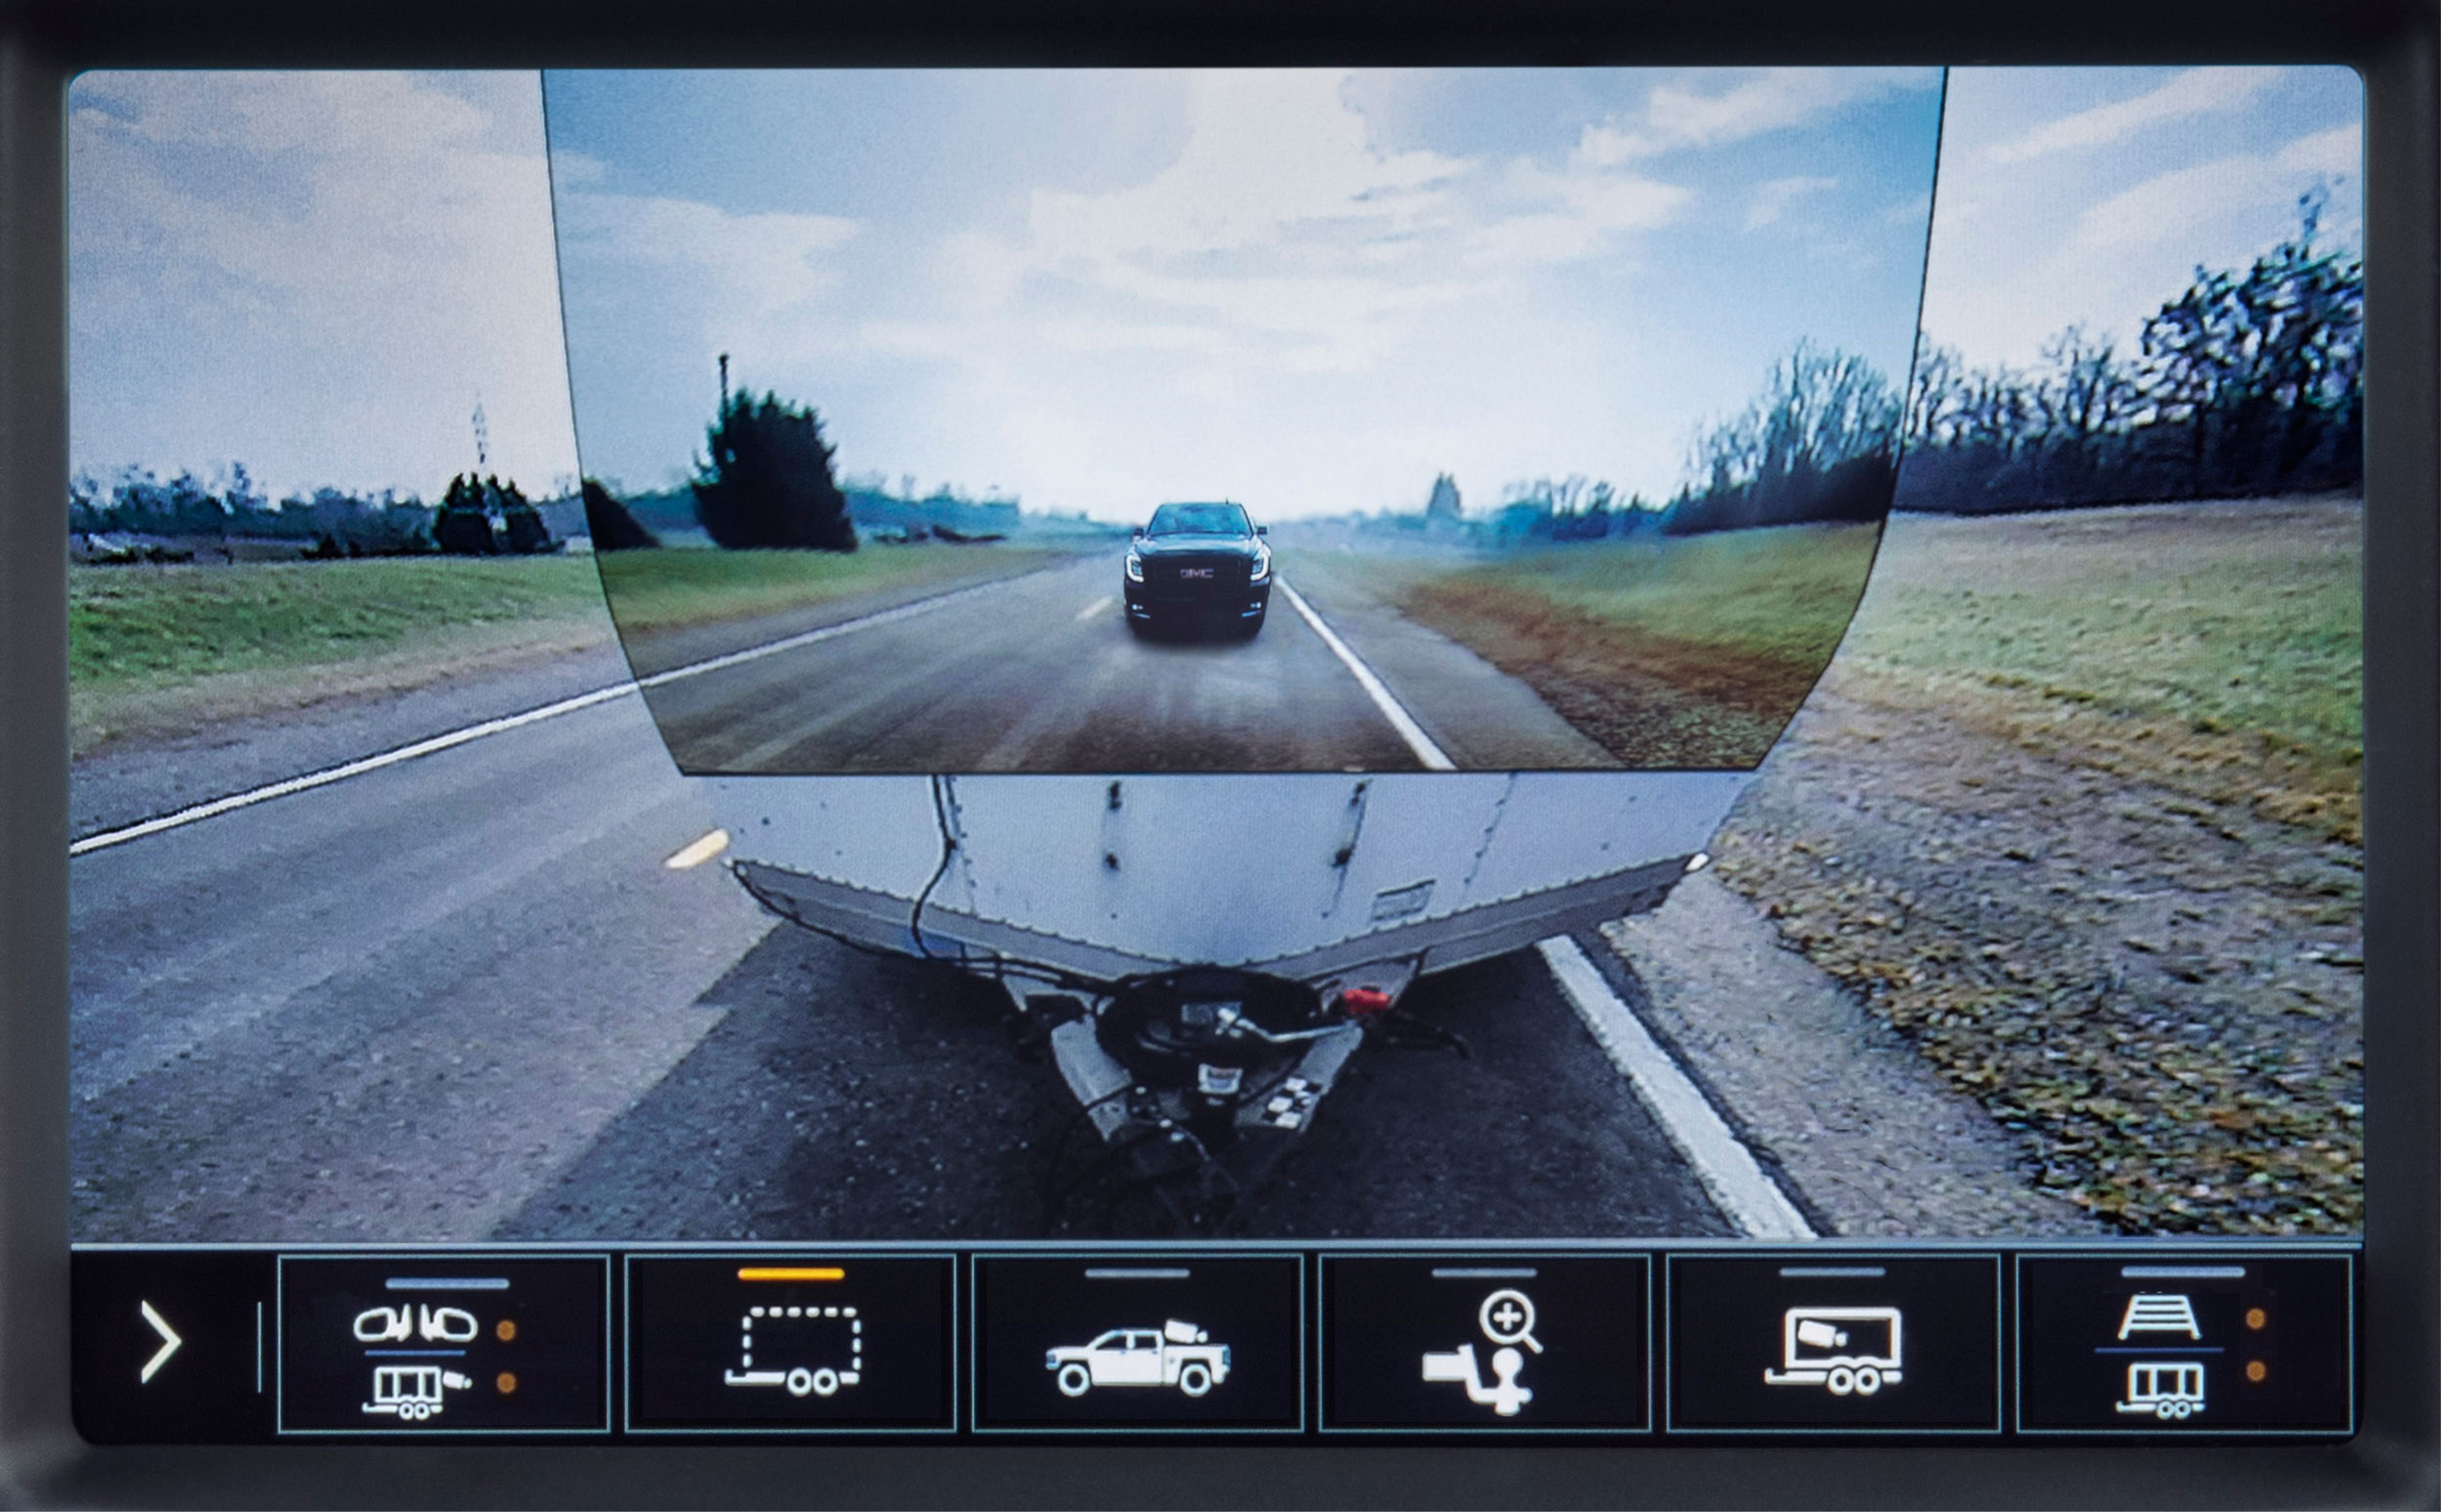 65 Great 2020 Gmc Backup Camera Reviews by 2020 Gmc Backup Camera